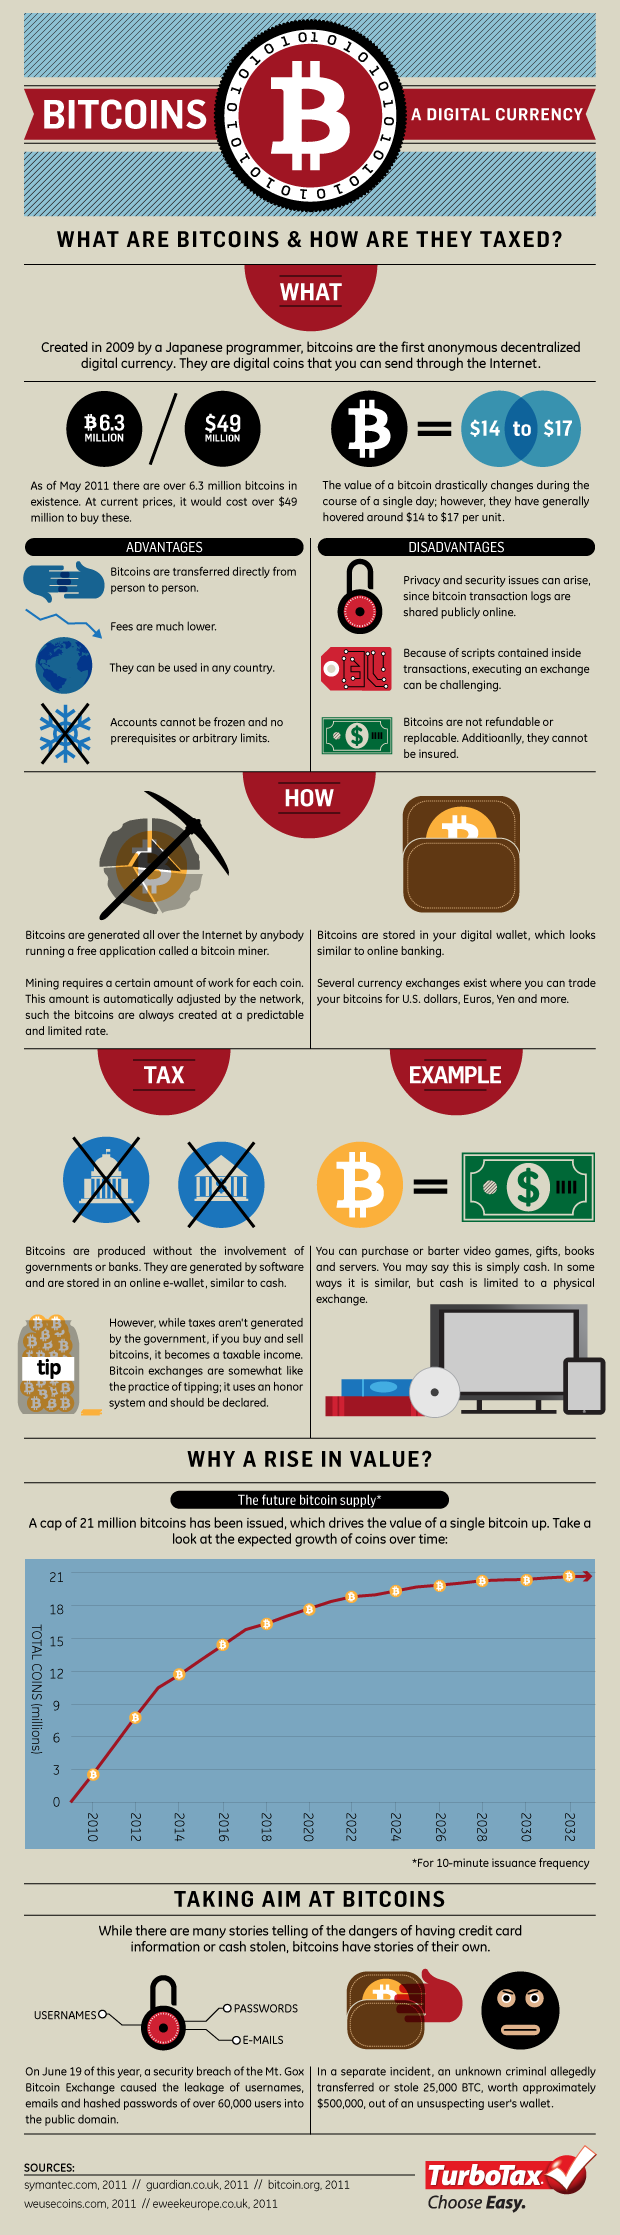 Bitcoins- A Digital Currency